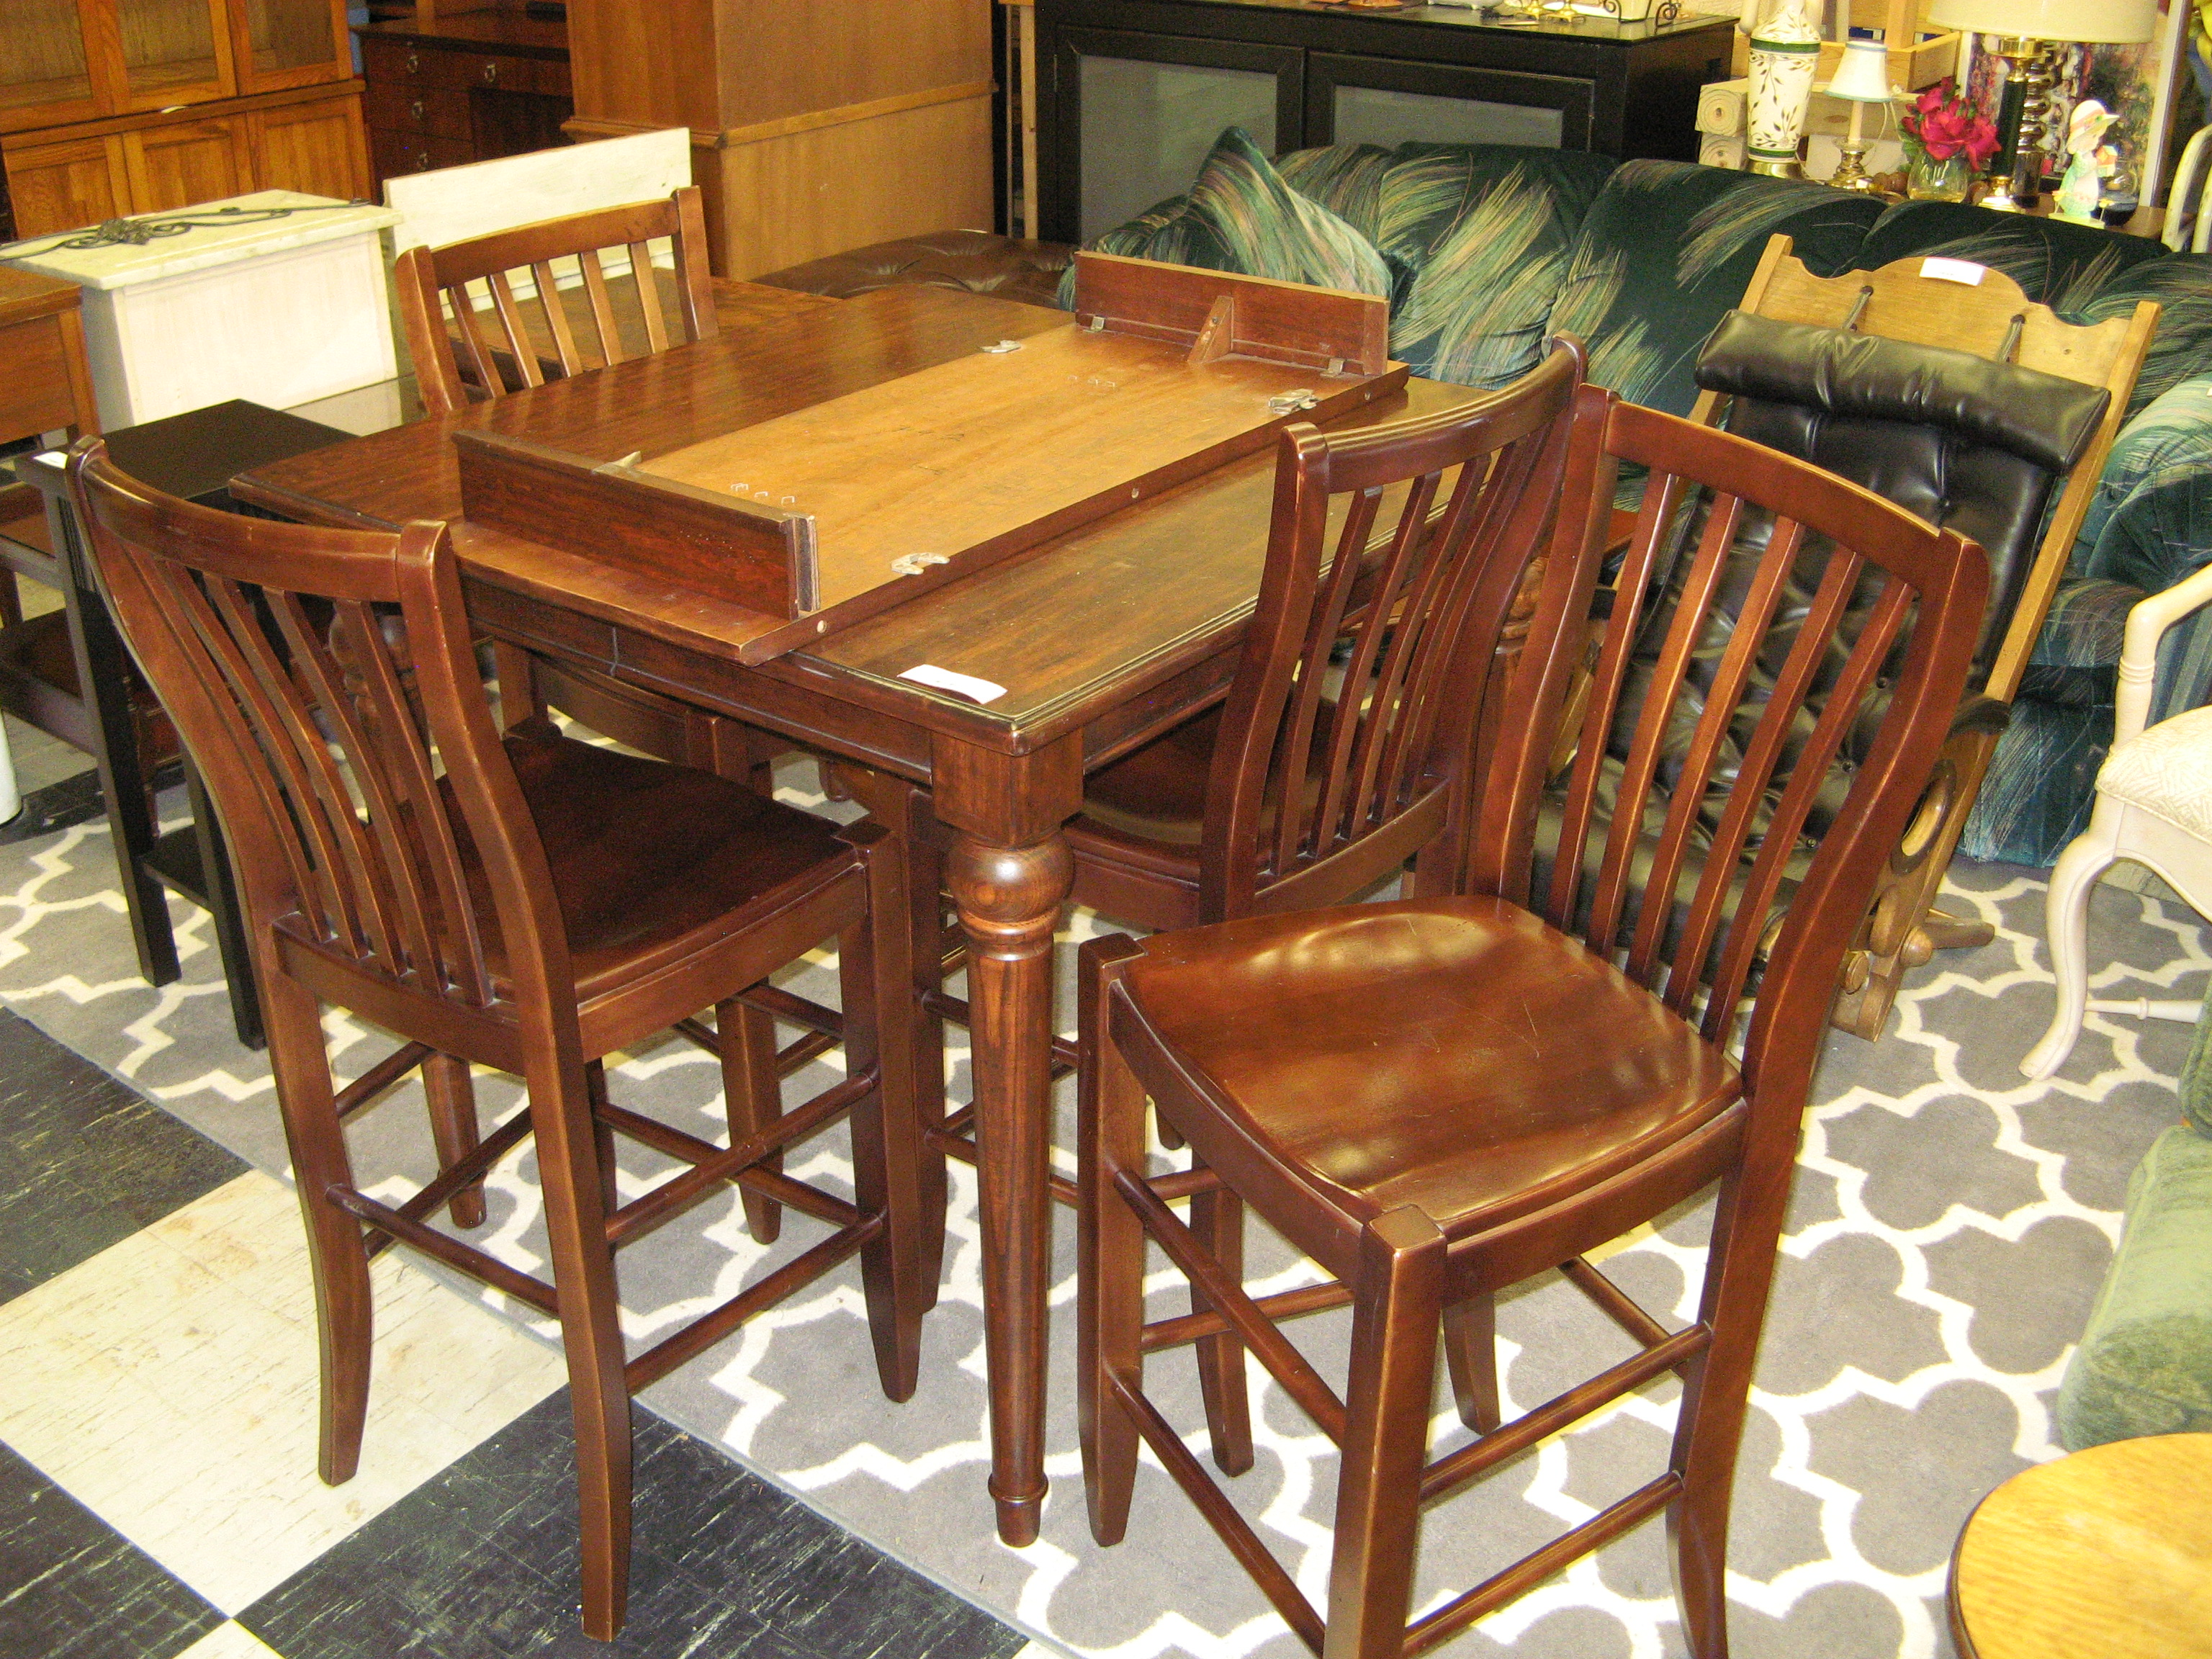 Nichols and Stone High Top Pub Table with 4 Chairs